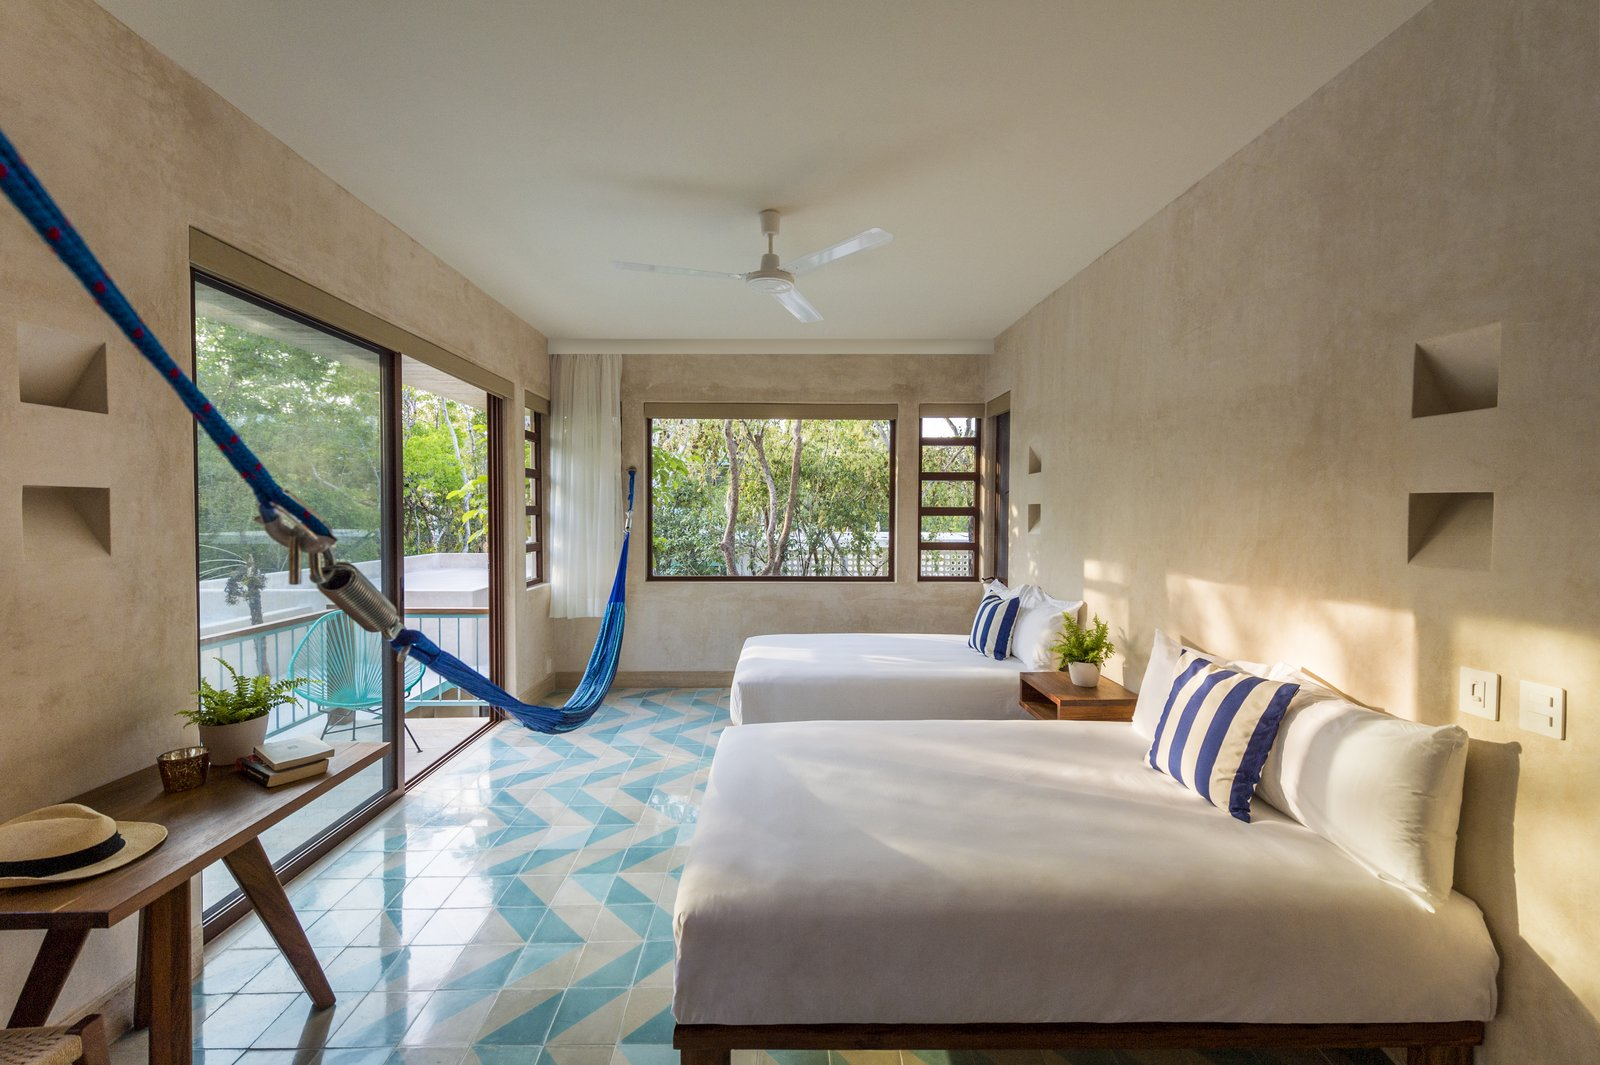 Designed in an architectural style that was popular in the Miami Beach area in the 1950s, the hotel—with its rattan chairs and soothing aquamarine palette—is a pared-down, retro-inspired jungle oasis.  All the floor tiles were designed by Haag who had them custom-made in Guadalajara with Mooma Mosaicos. The walls in the guest rooms were made with local sand mixed with white cement. A type of local limestone, known as Mayan stone, was used for the feature wall at the back of the bar. A water bio-digester treatment plant was incorporated so that water can be treated on-site and used for watering the lush gardens surrounding the property. Tagged: Bedroom, Night Stands, Ceiling Lighting, Bed, and Ceramic Tile Floor.  Photo 5 of 9 in A New Modern Hotel Brings Midcentury Miami to Tulum, Mexico